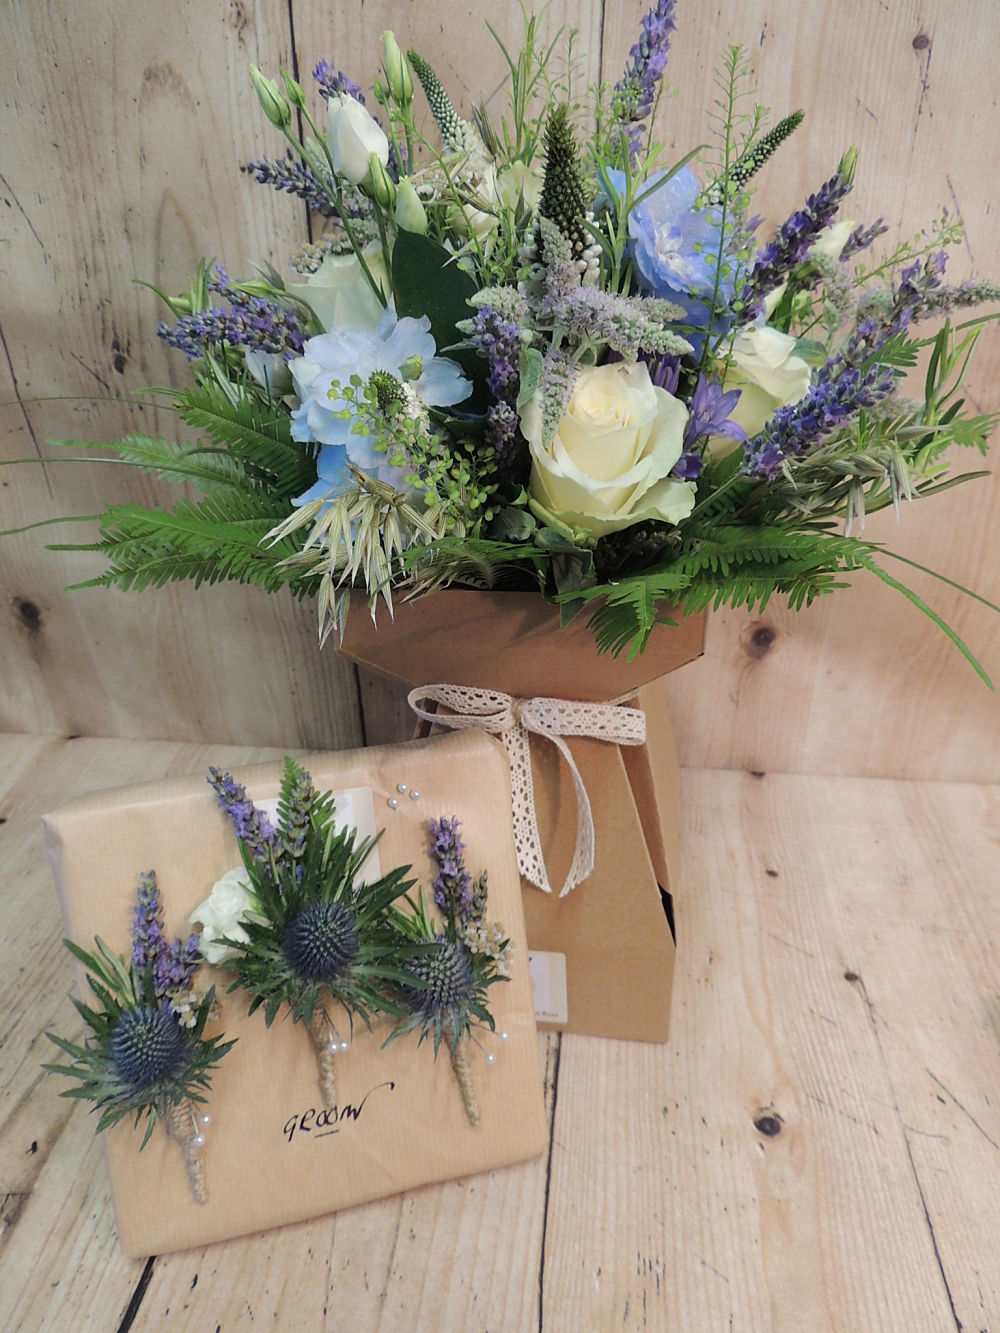 Oban_wedding_florist_the_thistle_and_the_rose